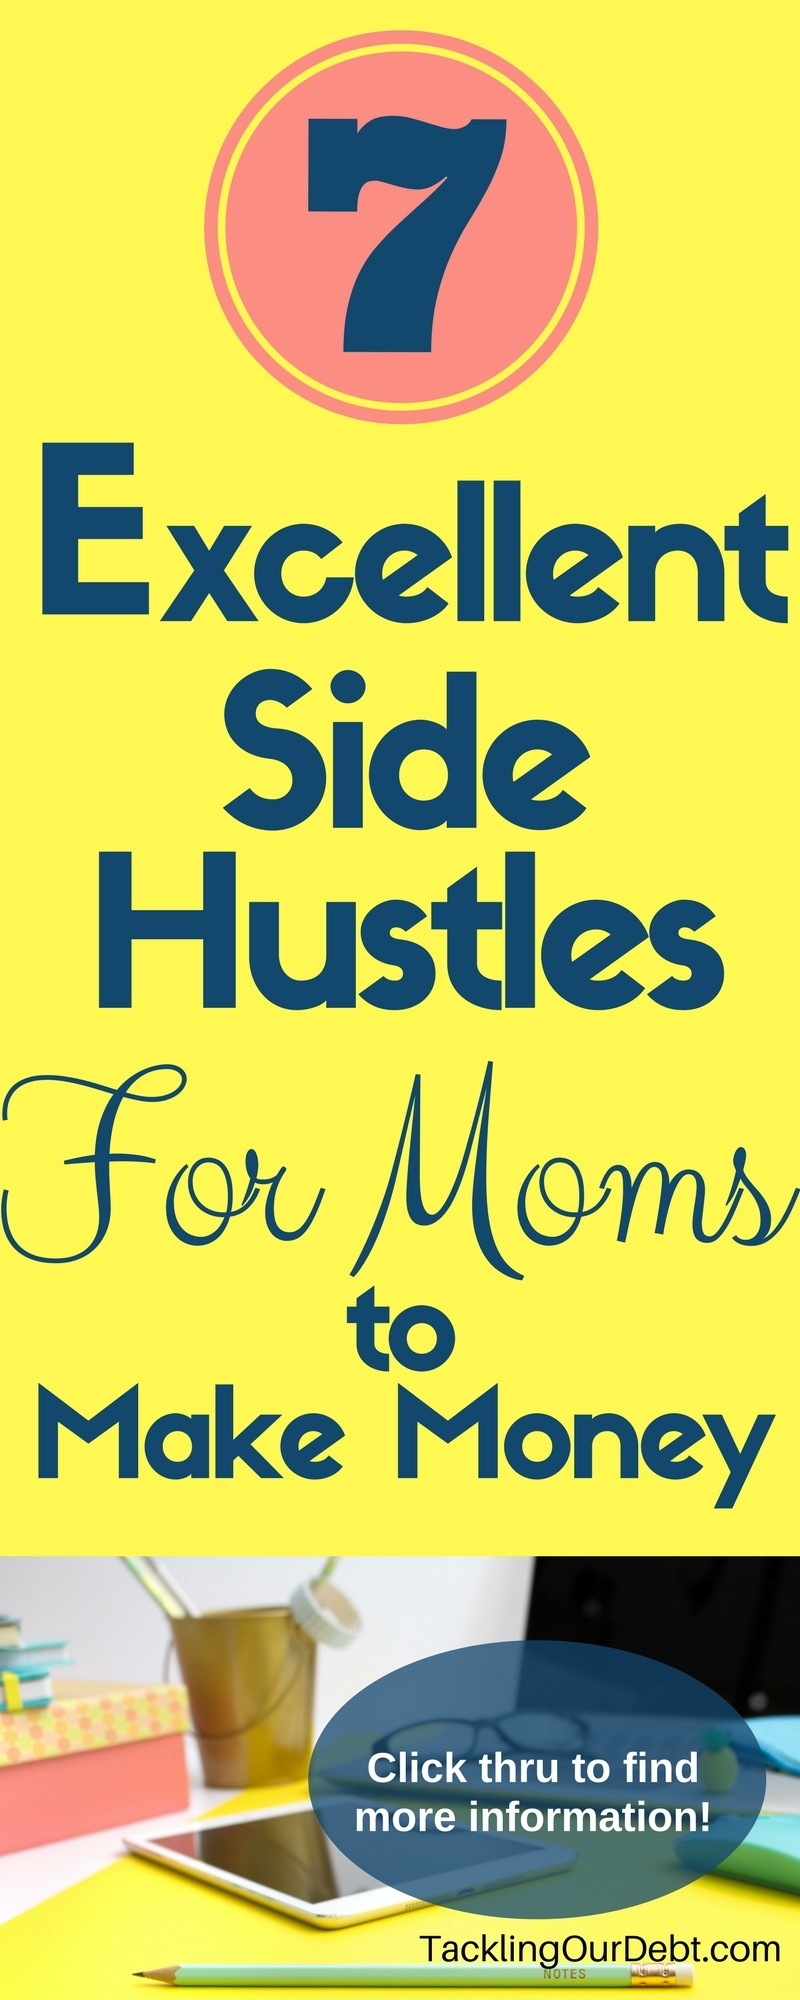 Seven Excellent Side Hustles For Moms to Make Money If you are a mom that wants to make money, but are struggling to find something that interests you, check out these seven side hustles for moms. Side hustles are the best way to earn money these days because side hustles allow you to decide how much money you will make based on how much time you want to spend working on it. Click thru to find more information!